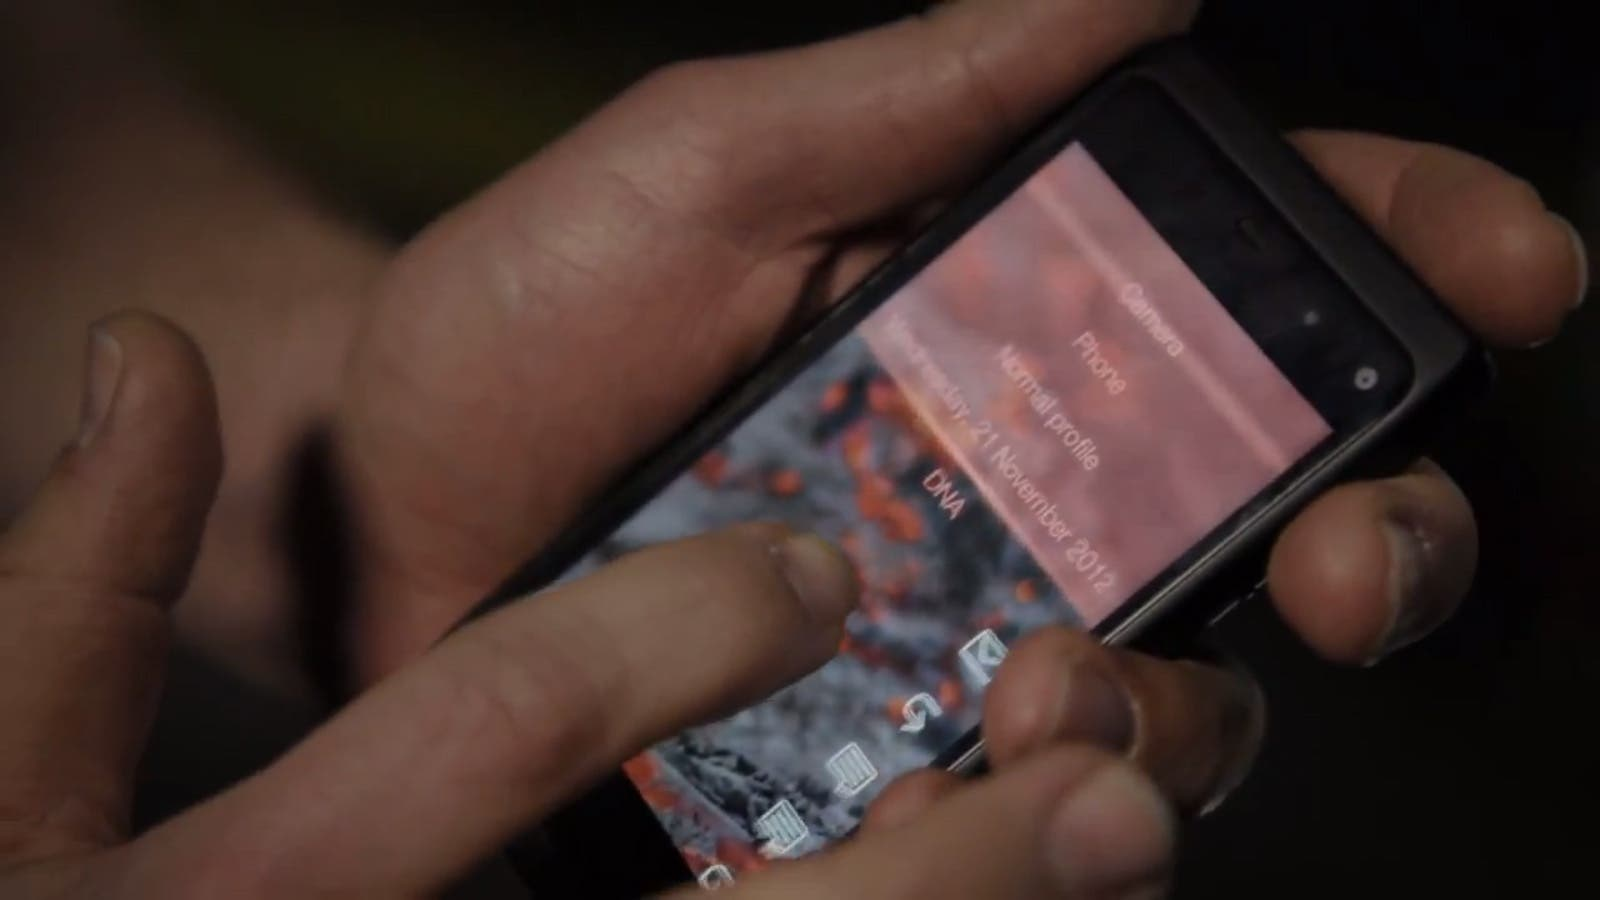 Neues Smartphone-Betriebssystem Jolla Sailfish OS in ausführlichem Walkthrough Video